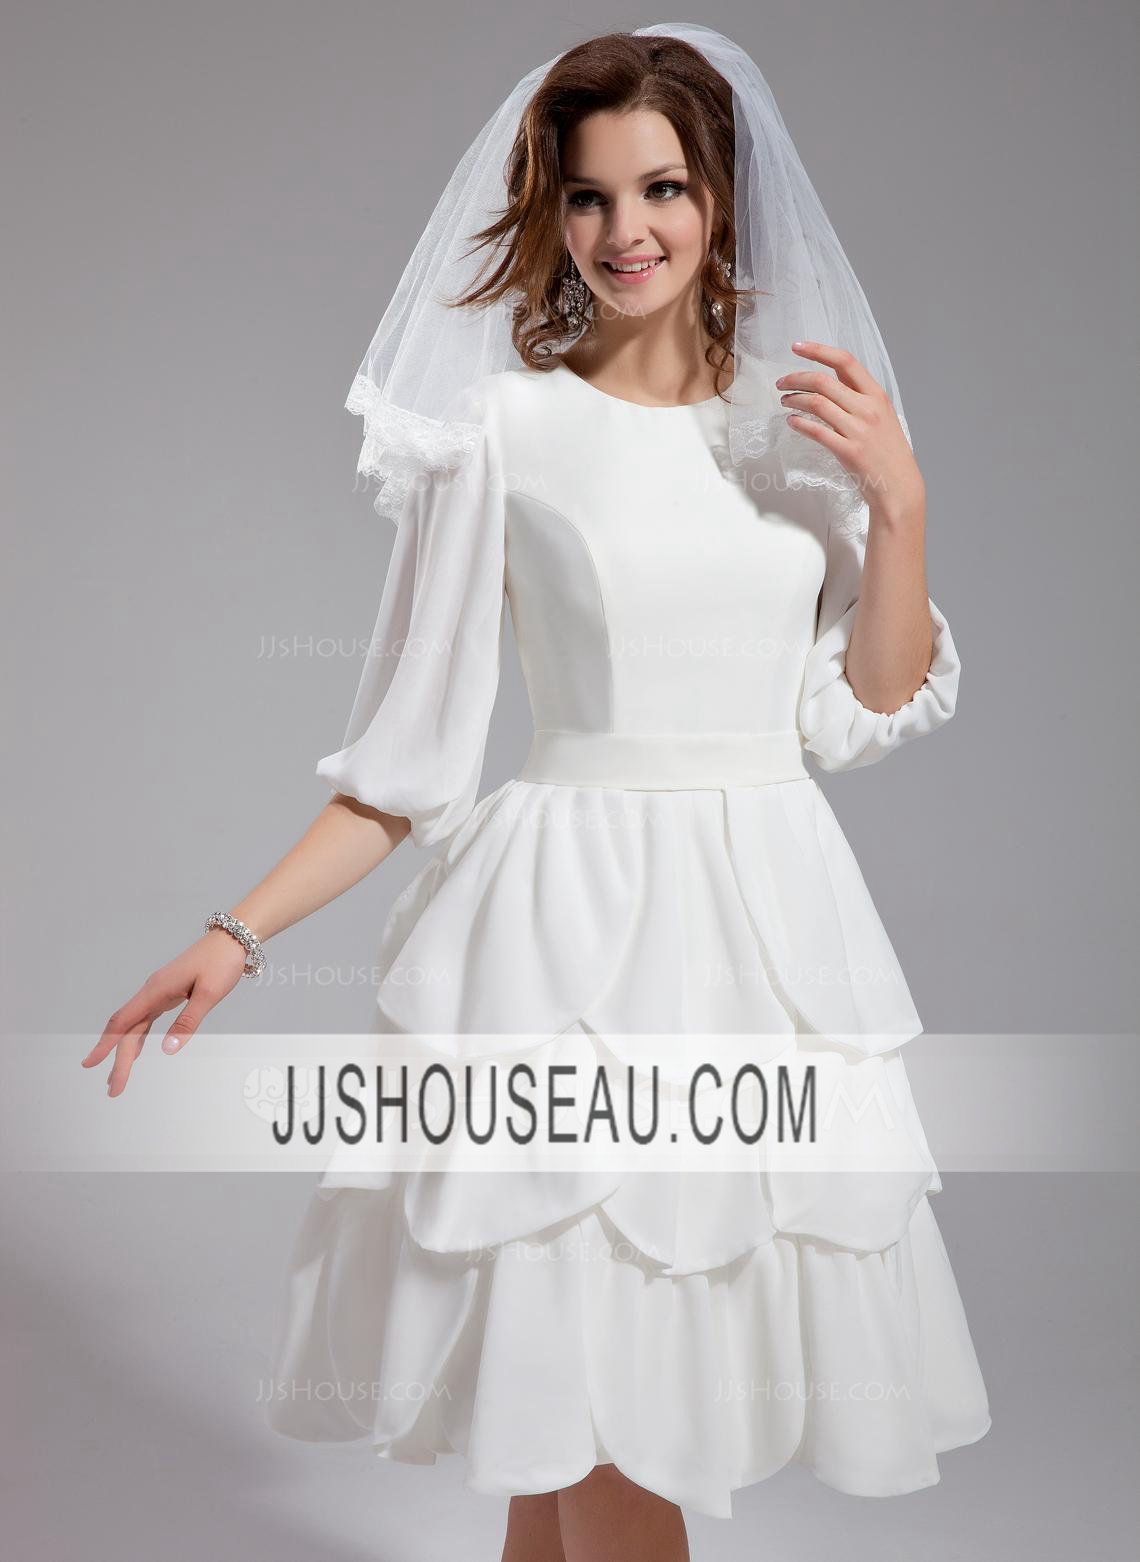 sleeves alineprincess sleeves ruffle kneelength wedding dress